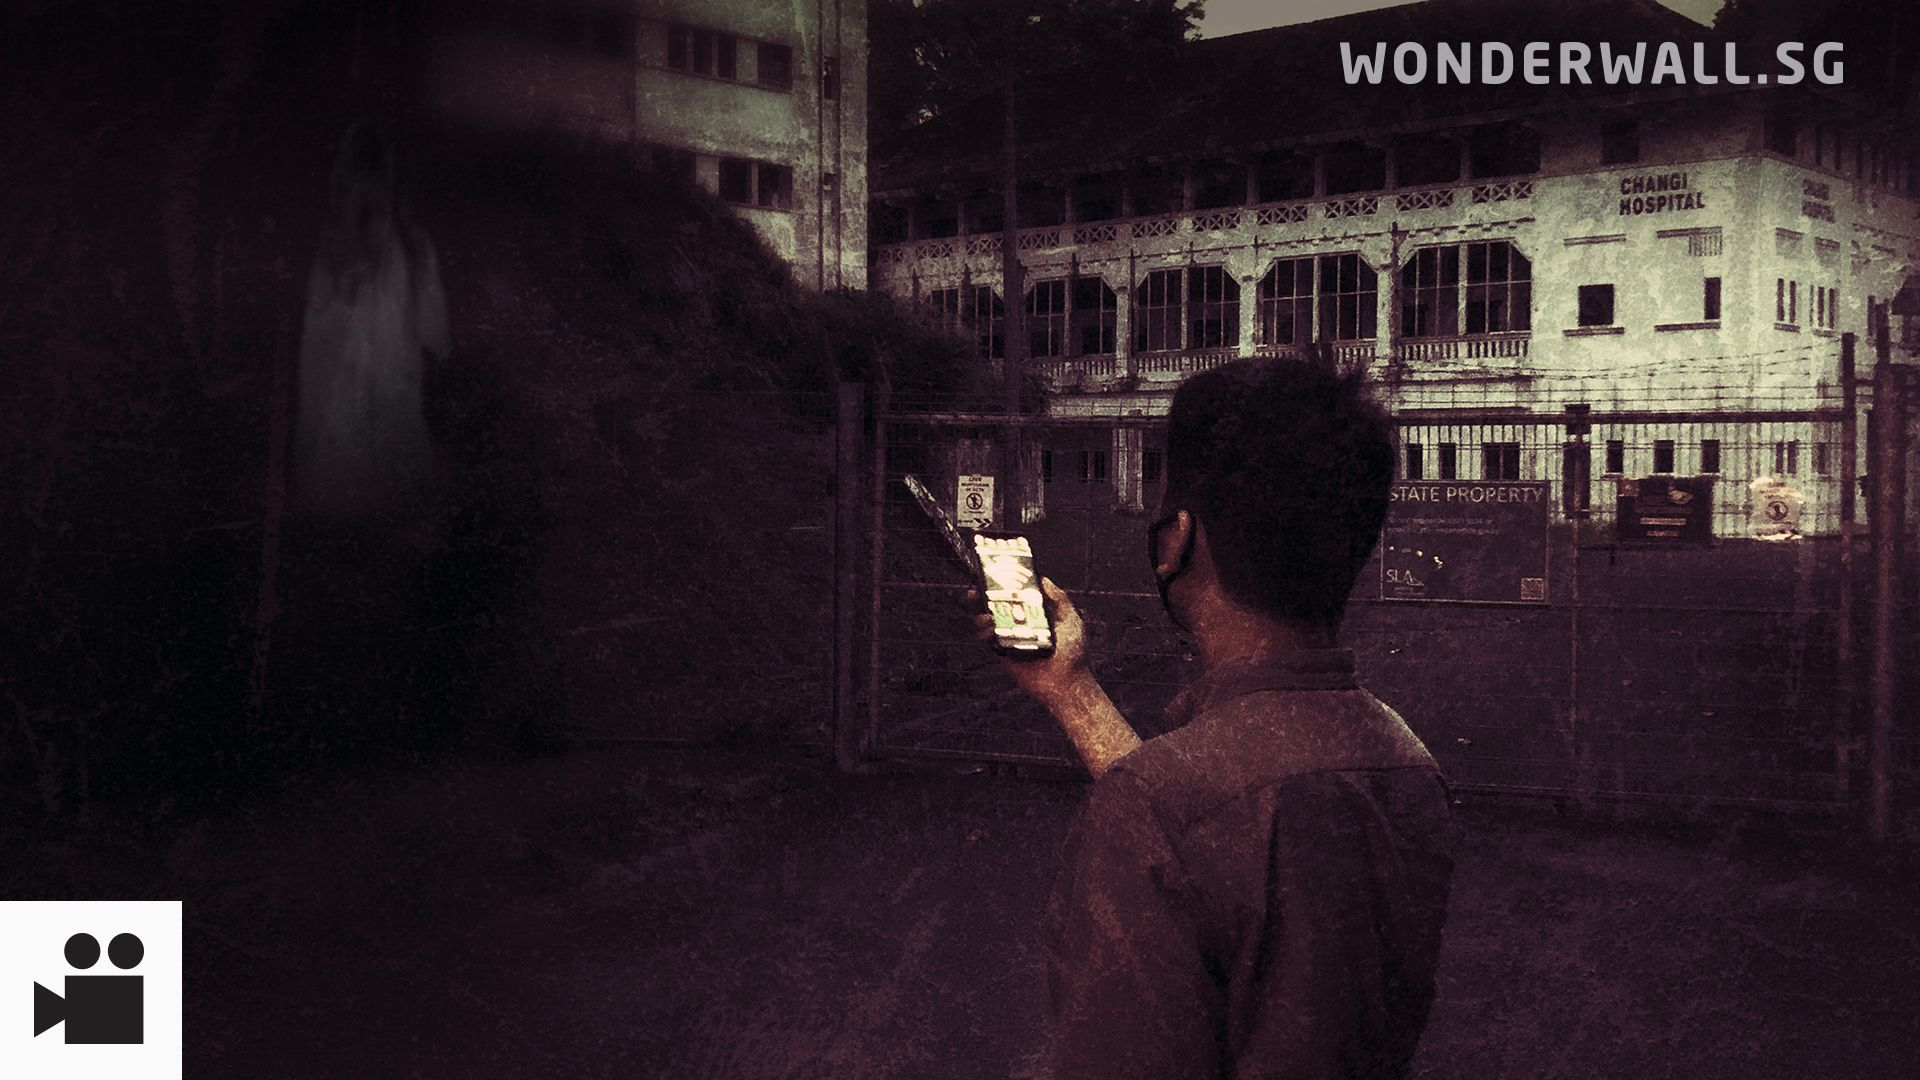 We Went Ghost Hunting With Apps At Old Changi Hospital - Found Some